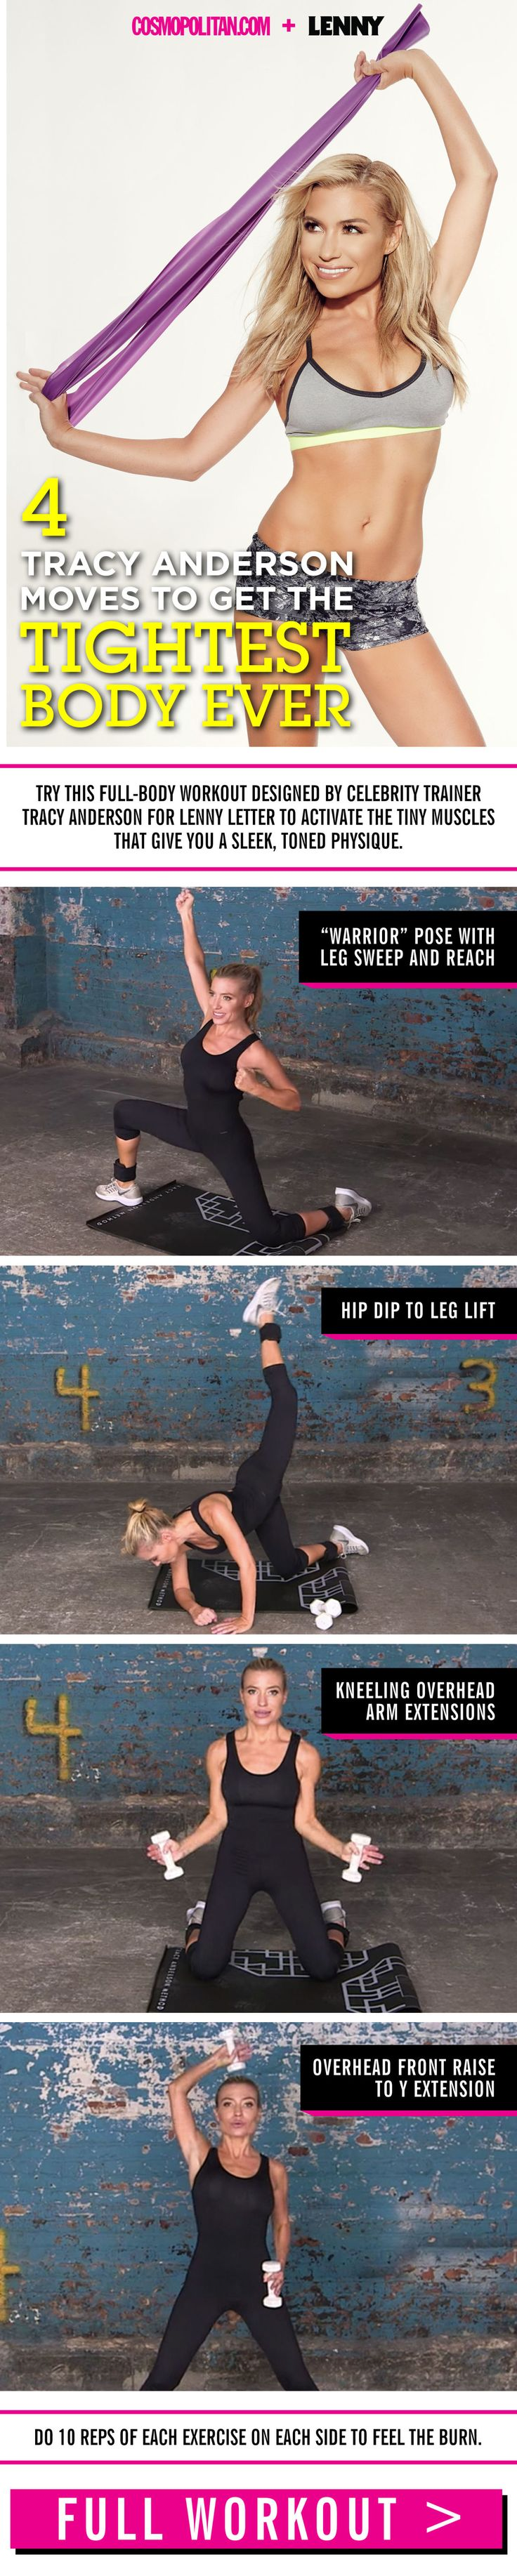 Celebs like Taylor Swift and J.Lo swear by the Tracy Anderson Method — an exercise technique designed by the fitness guru. Now you can try her full-body workout with this routine!